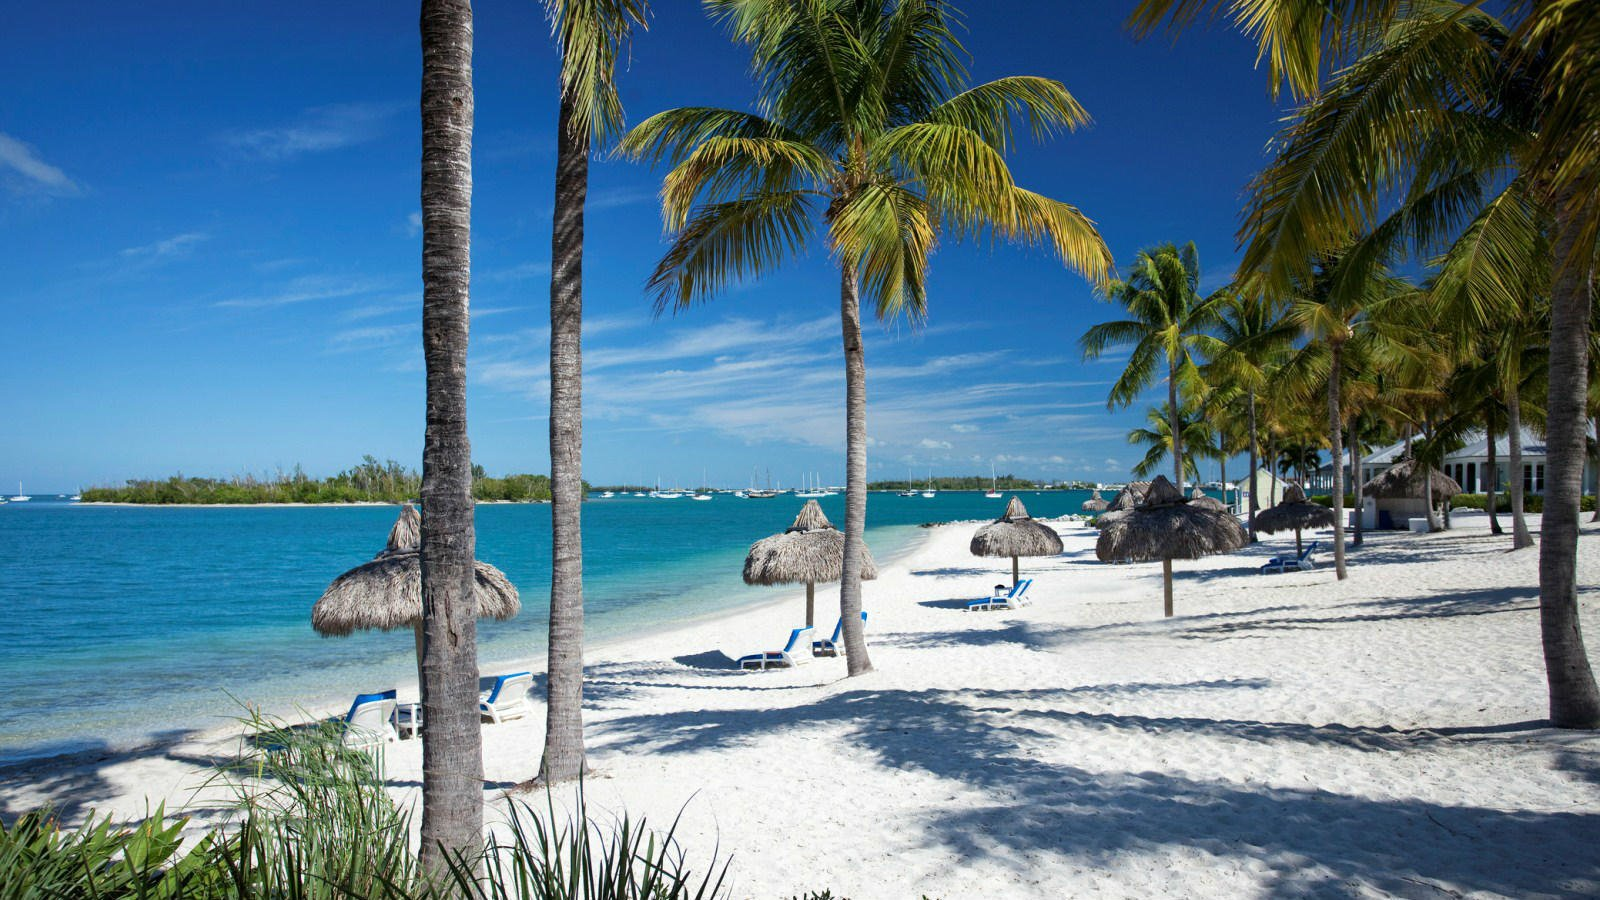 The Top 10 Key West Hotels